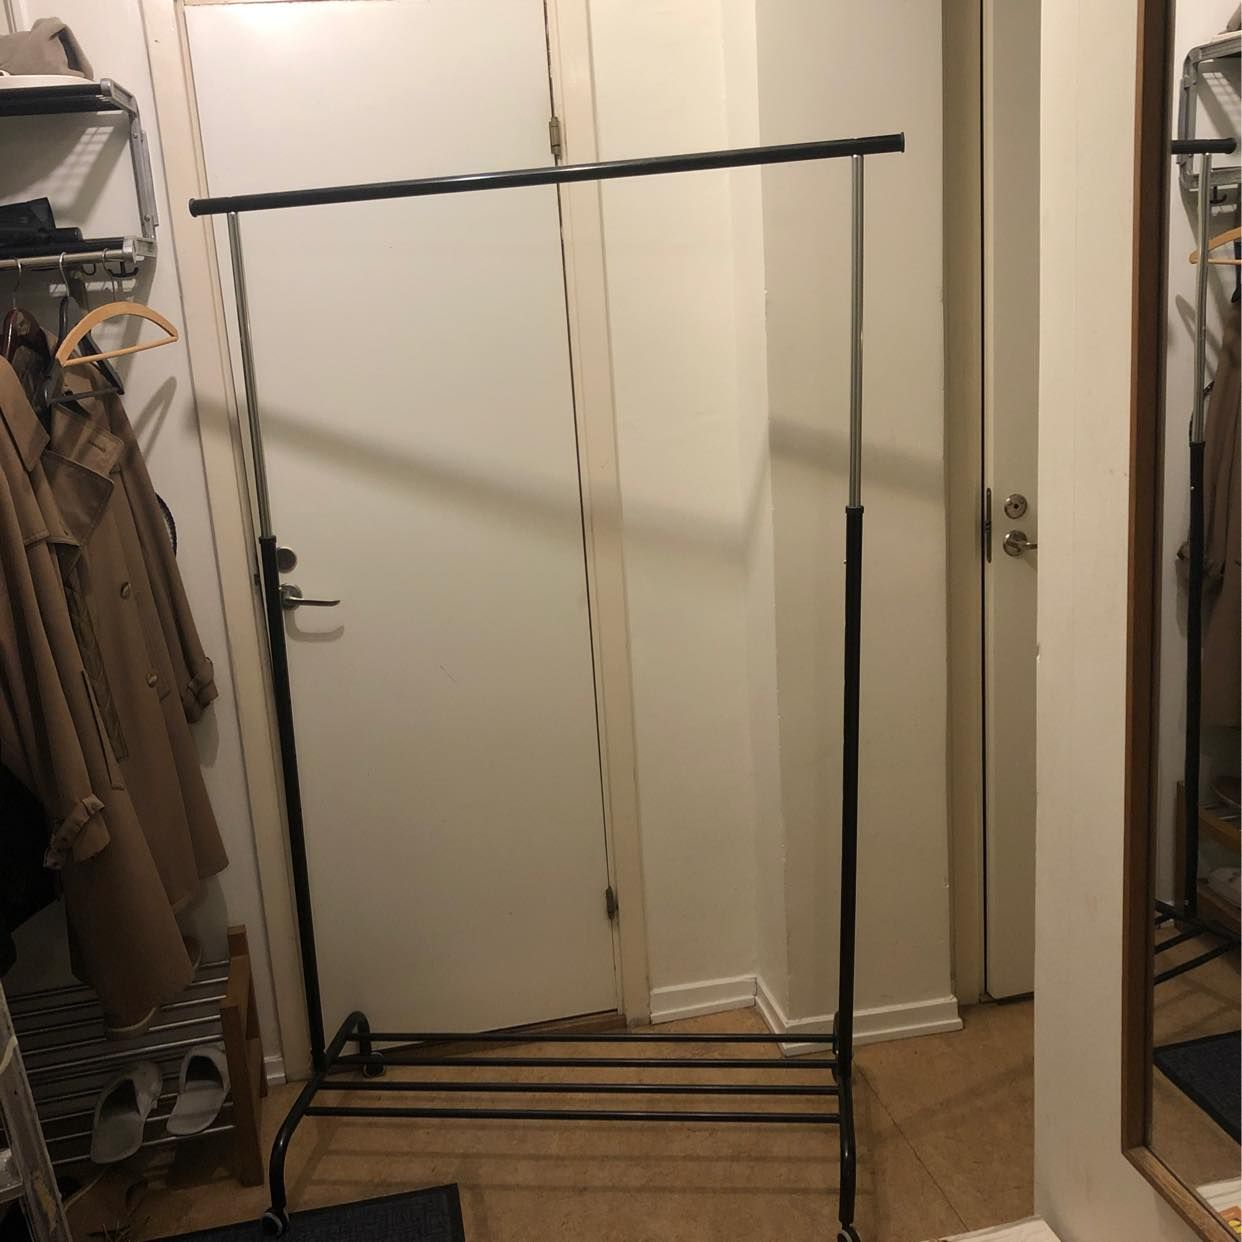 image of Clothes rack - Stockholm City